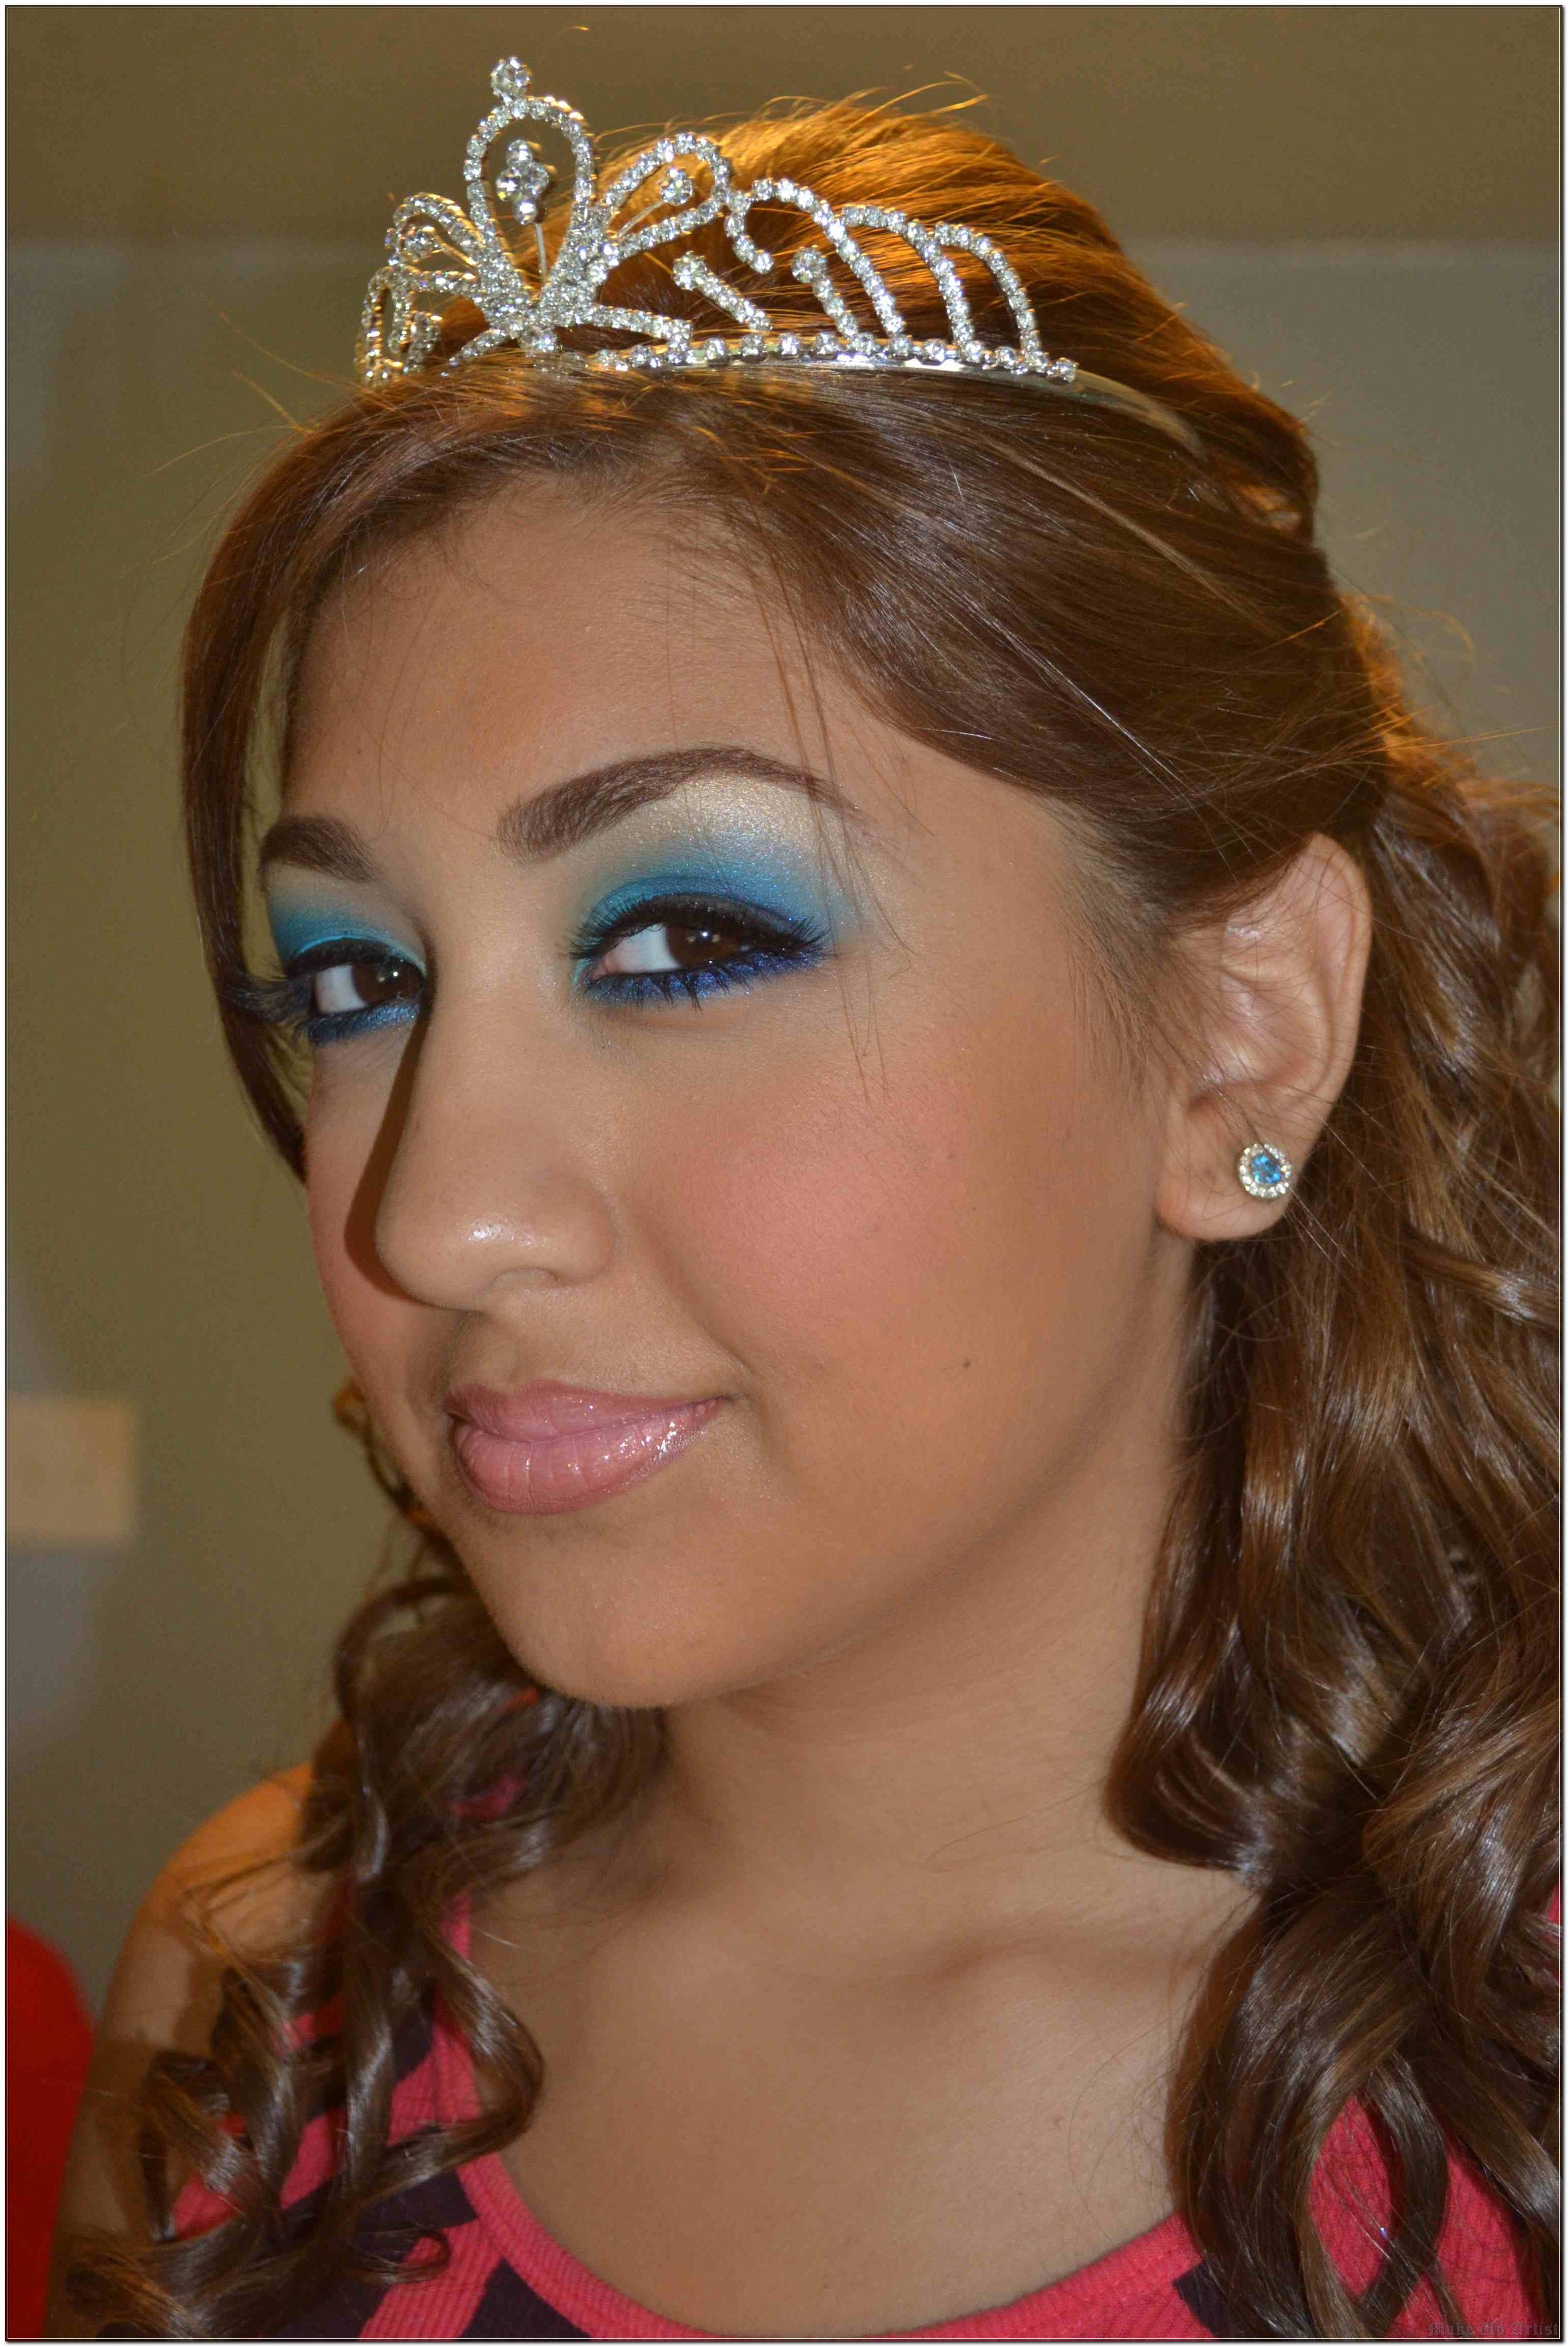 Make Up Artist Is Crucial To Your Business. Learn Why!